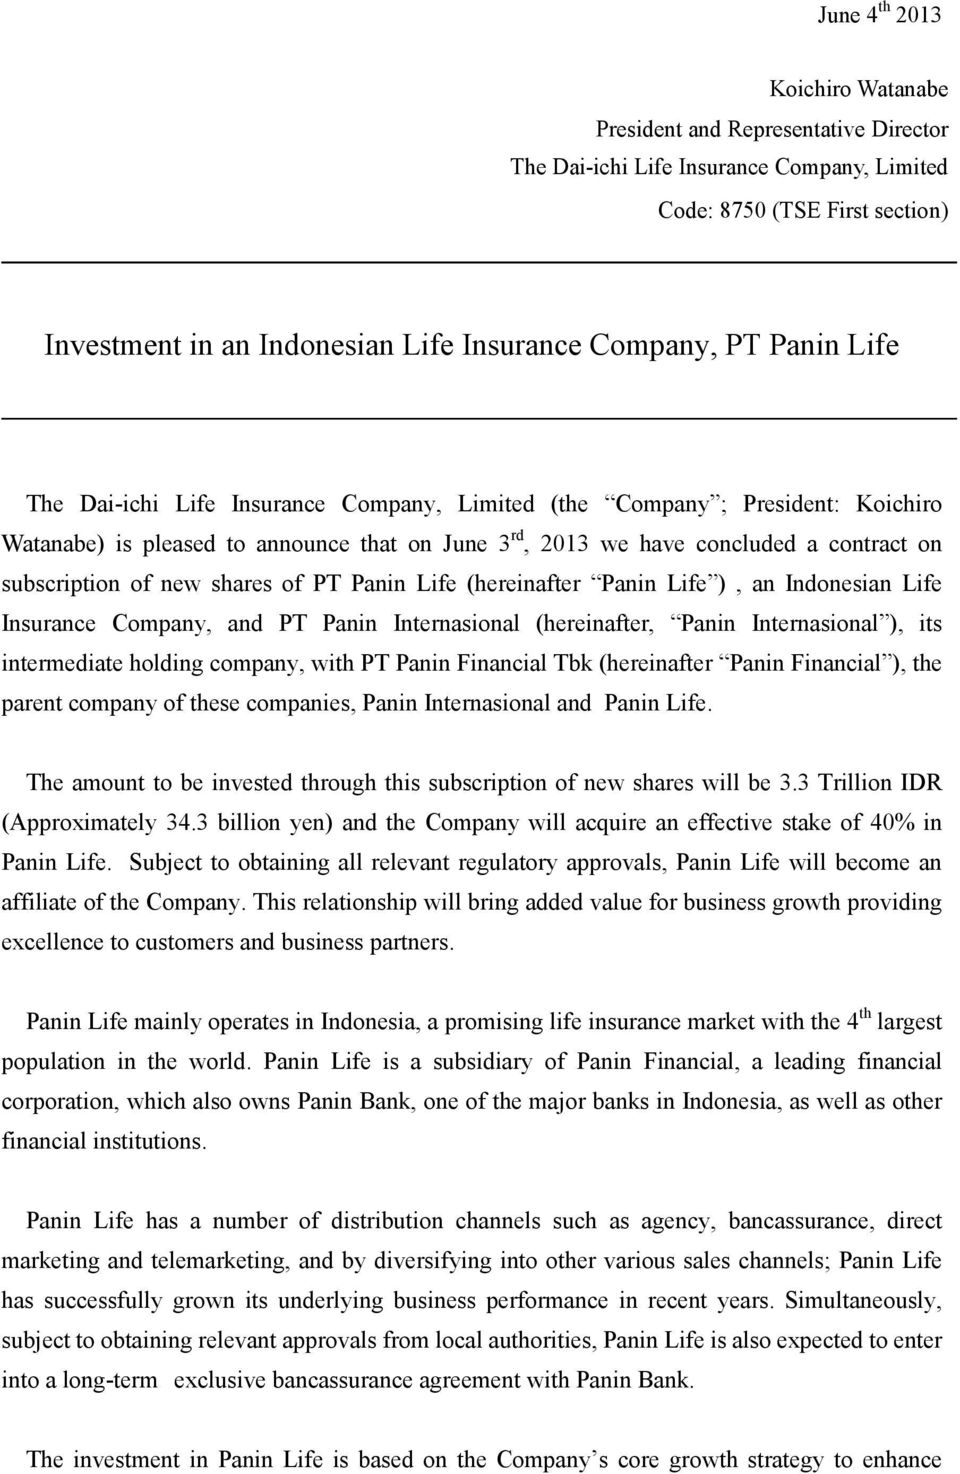 new shares of PT Panin Life (hereinafter Panin Life ), an Indonesian Life Insurance Company, and PT Panin Internasional (hereinafter, Panin Internasional ), its intermediate holding company, with PT